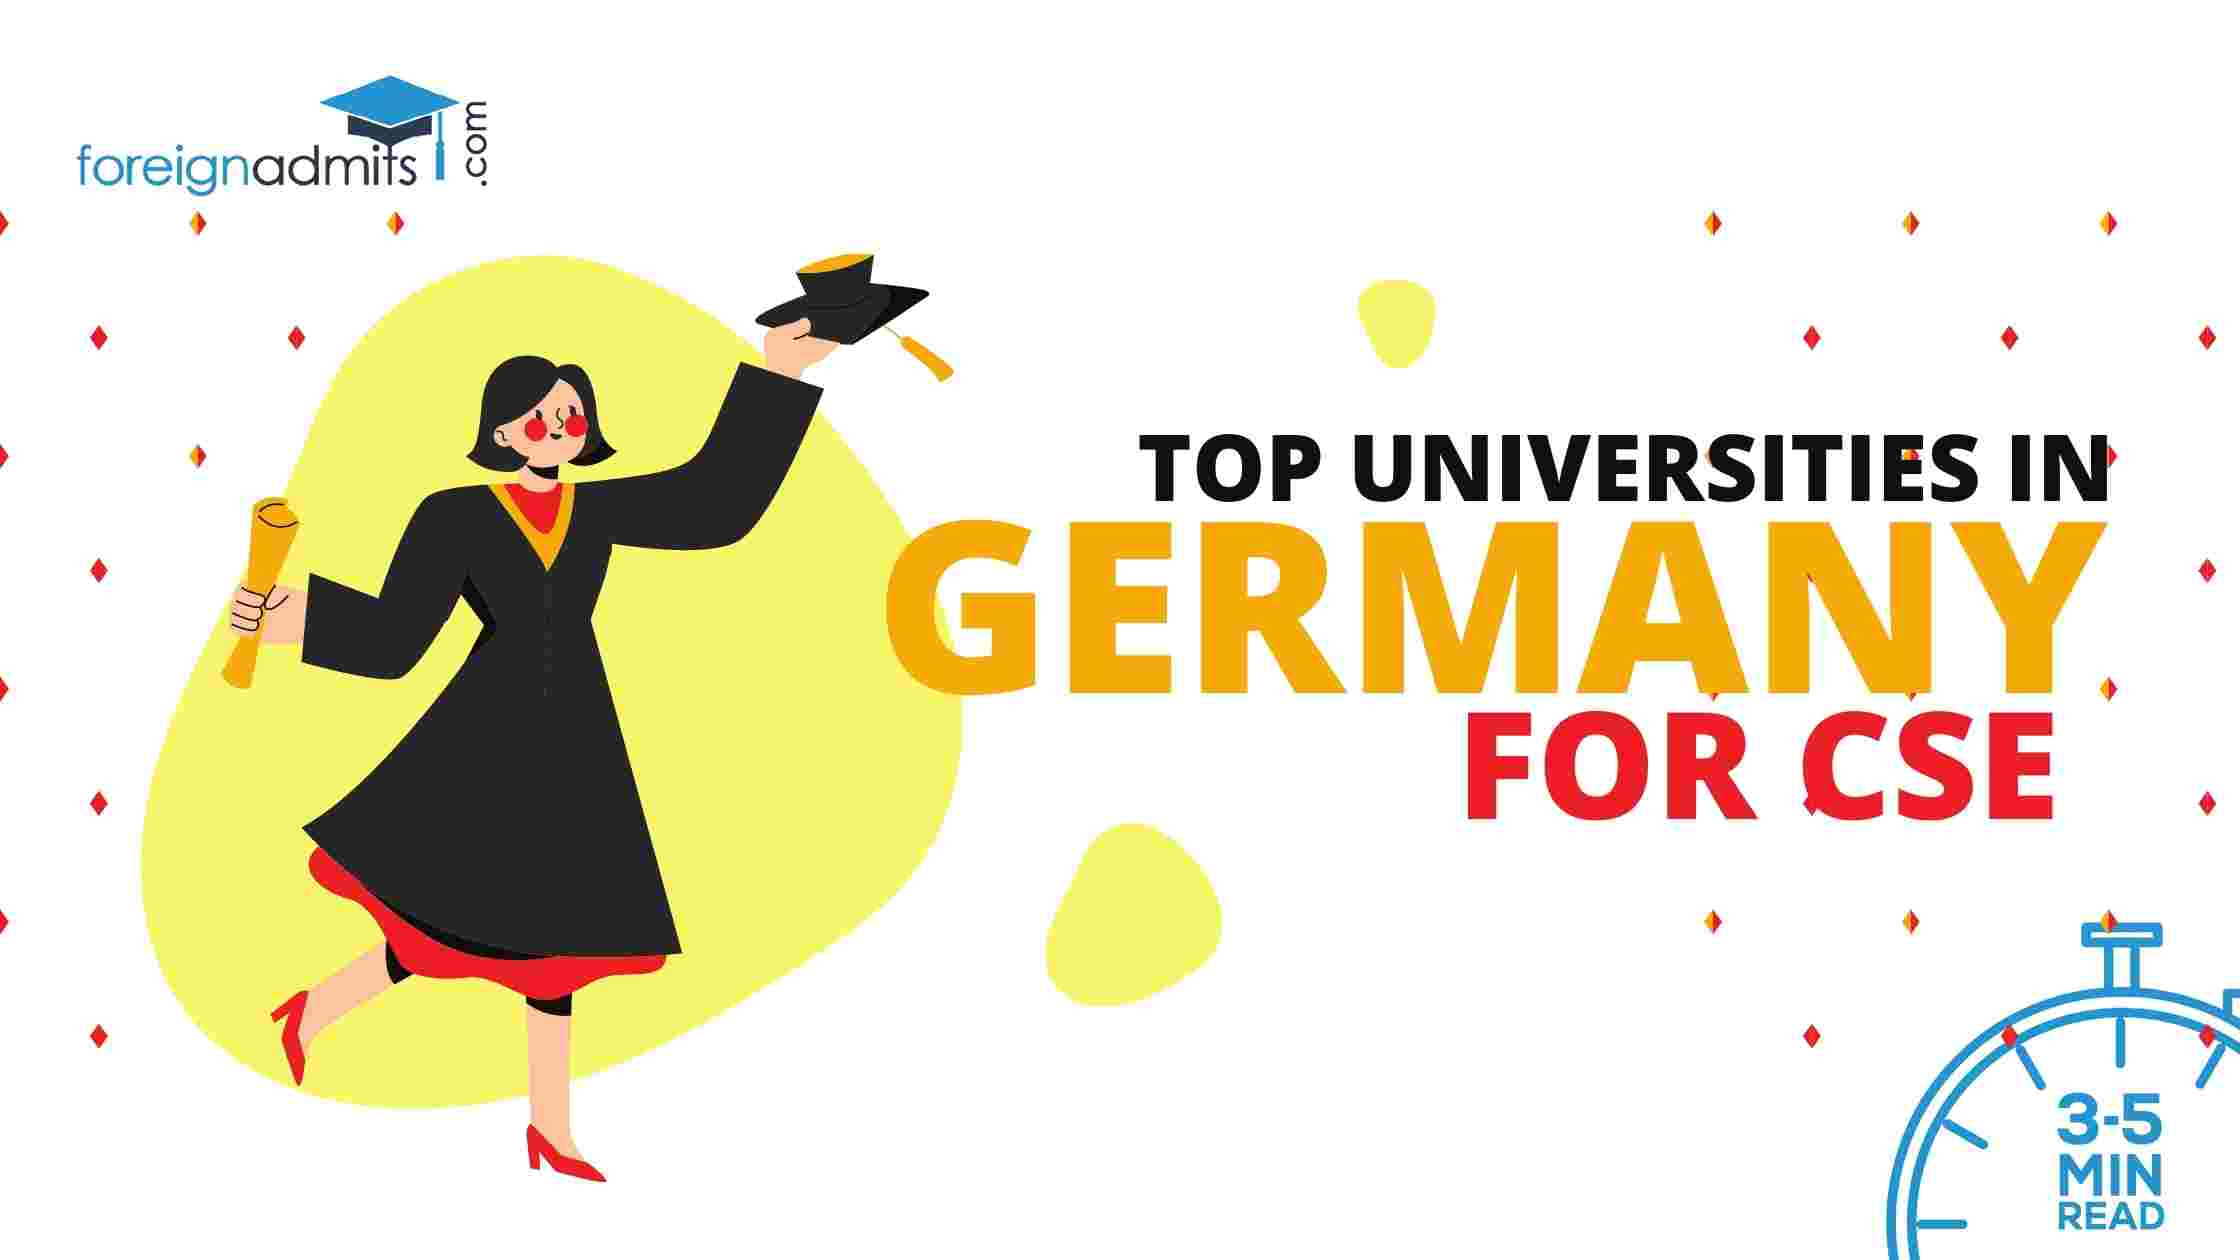 Top Universities In Germany For CSE